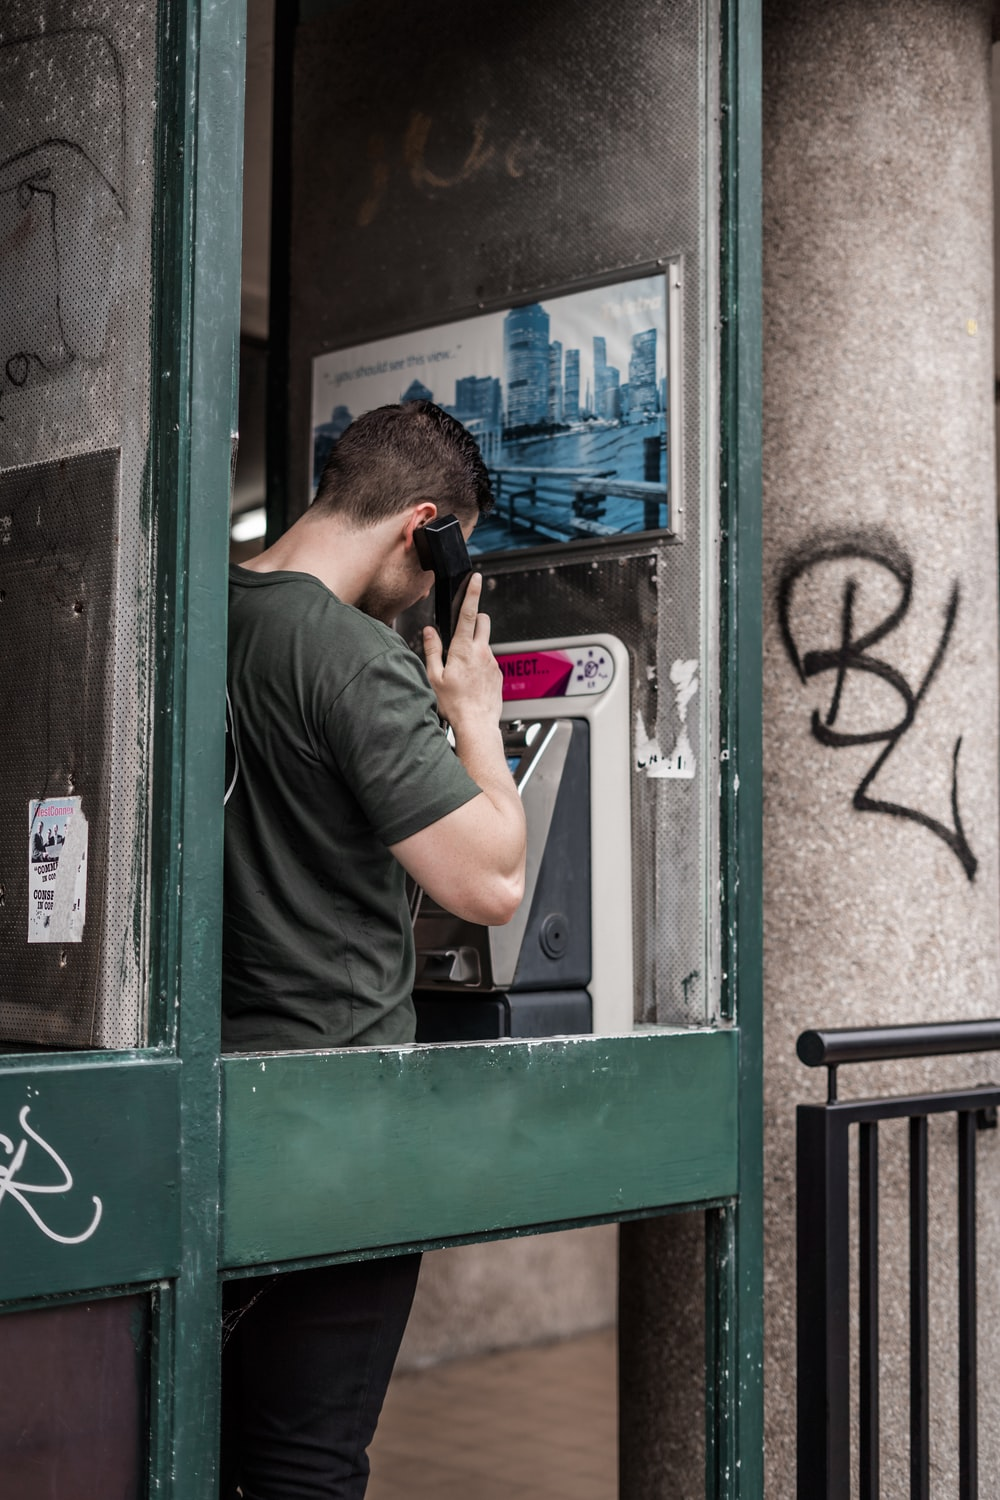 man standing while using telephone